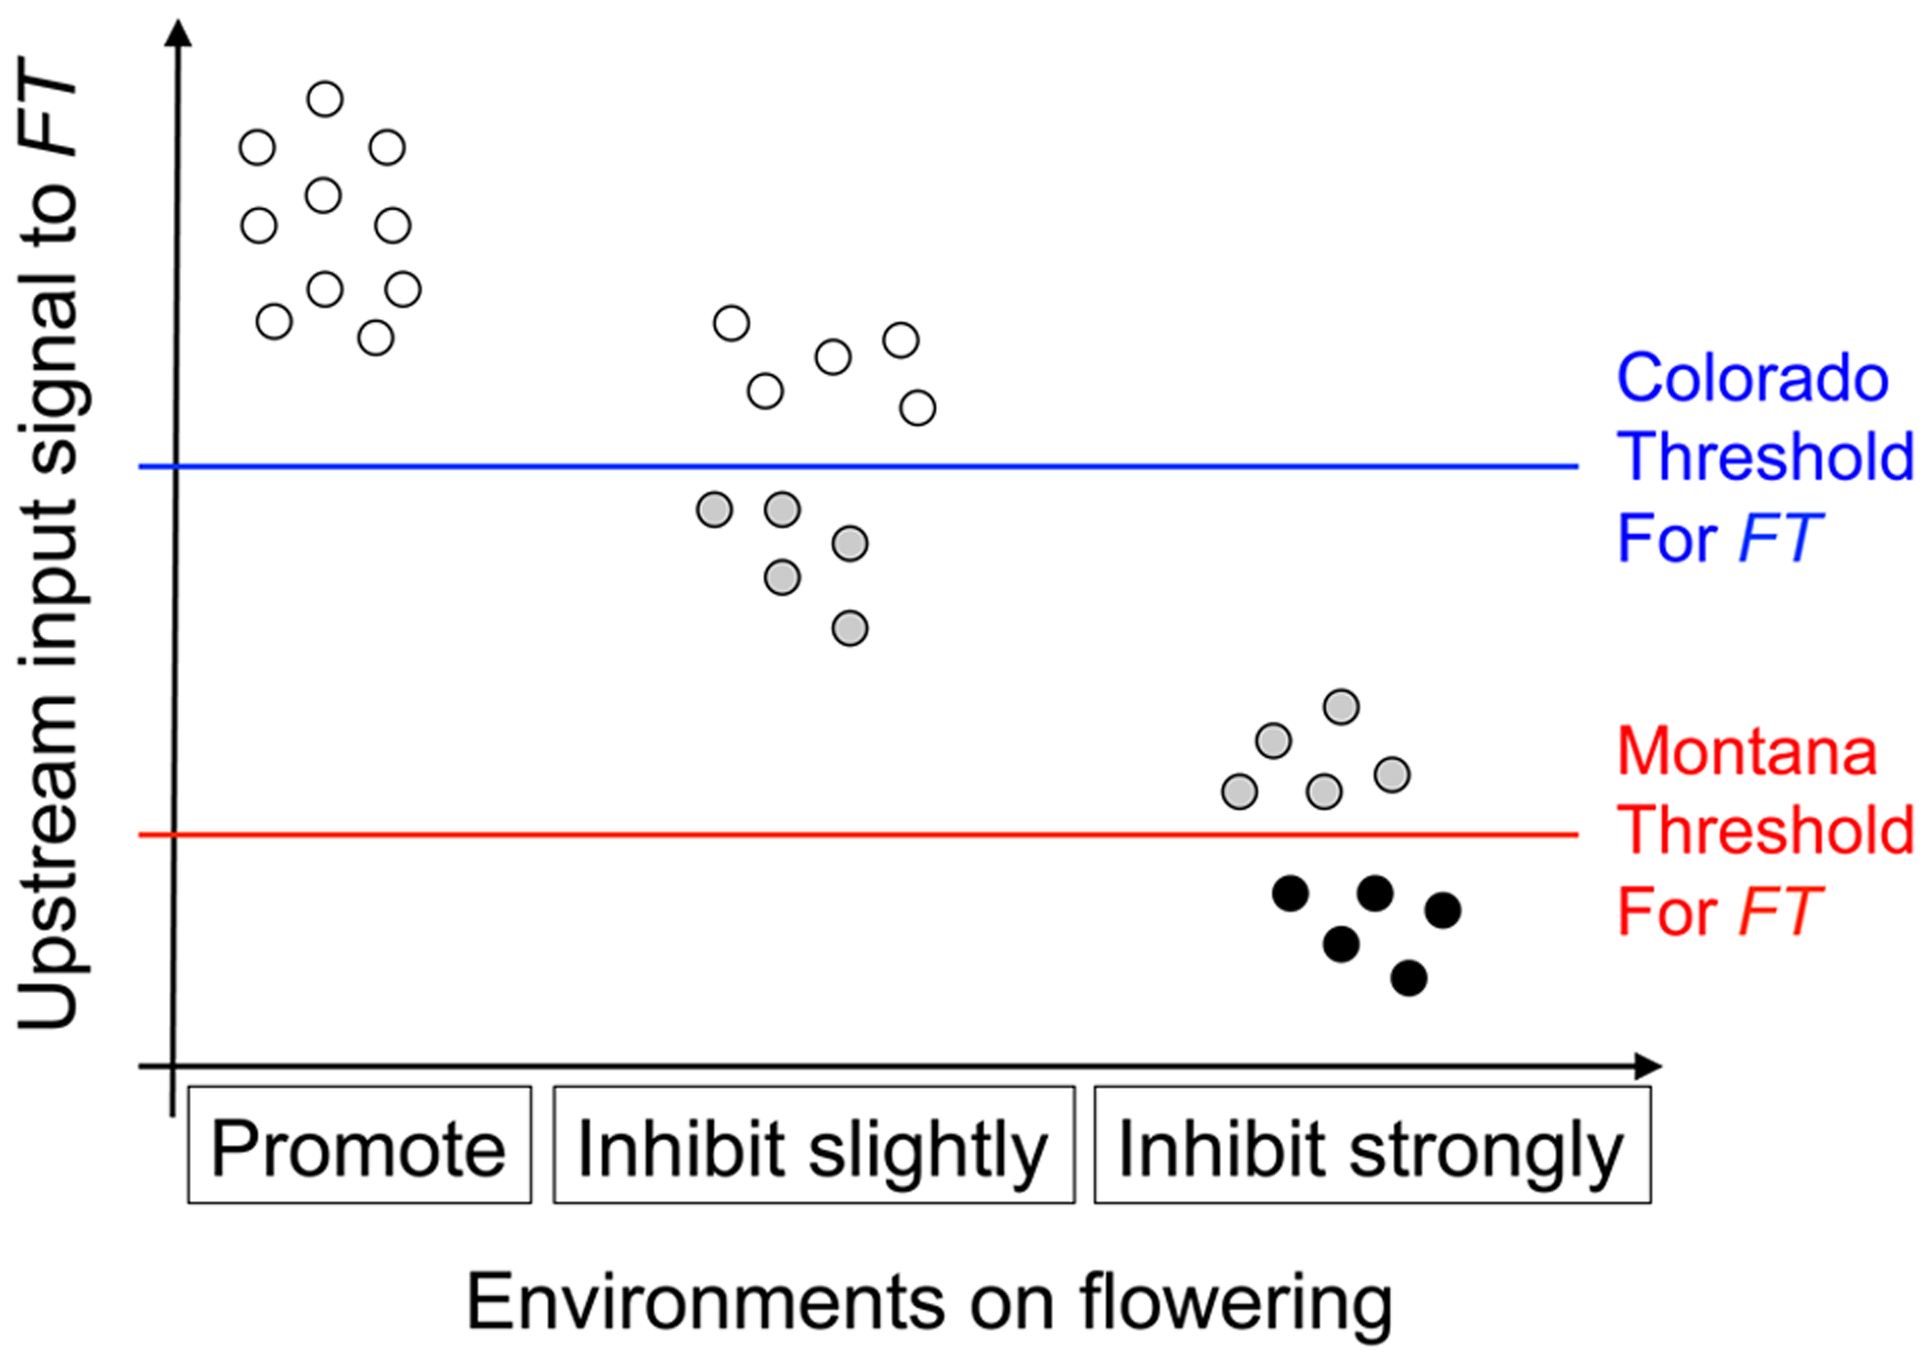 Illustration of the threshold hypothesis, proposing that <i>nFT</i>'s reversible canalization effect results from the interaction among <i>FT</i> gene, genomic backgrounds, and environments.